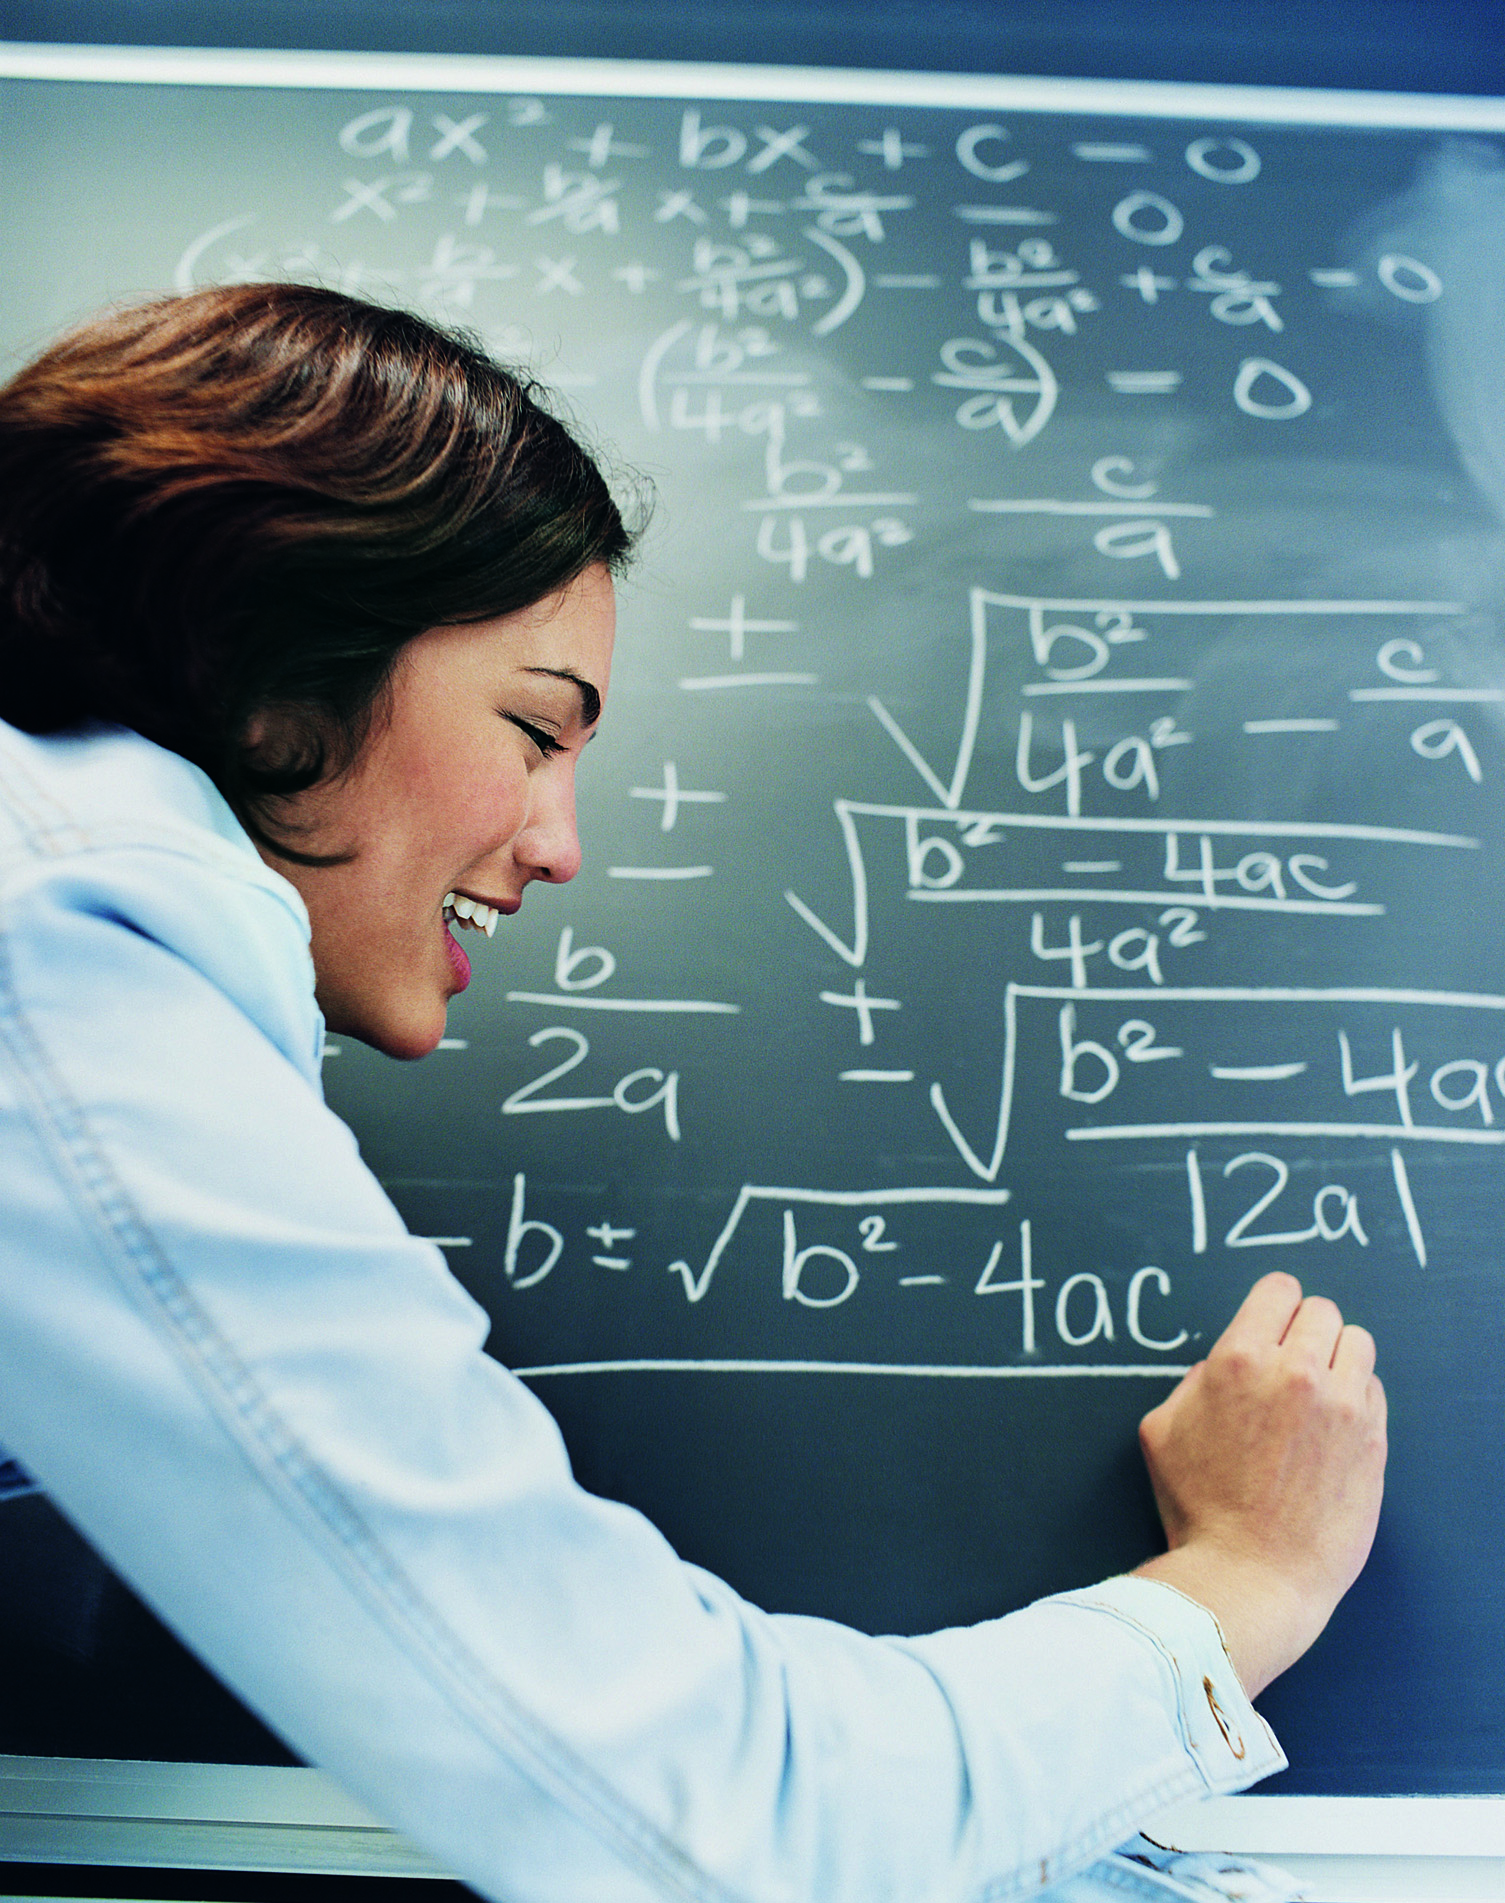 polynomials in daily life Nurses use ratios and proportions daily, as well as converting important units  mathematics plays a crucial role in medicine and because people's lives are.